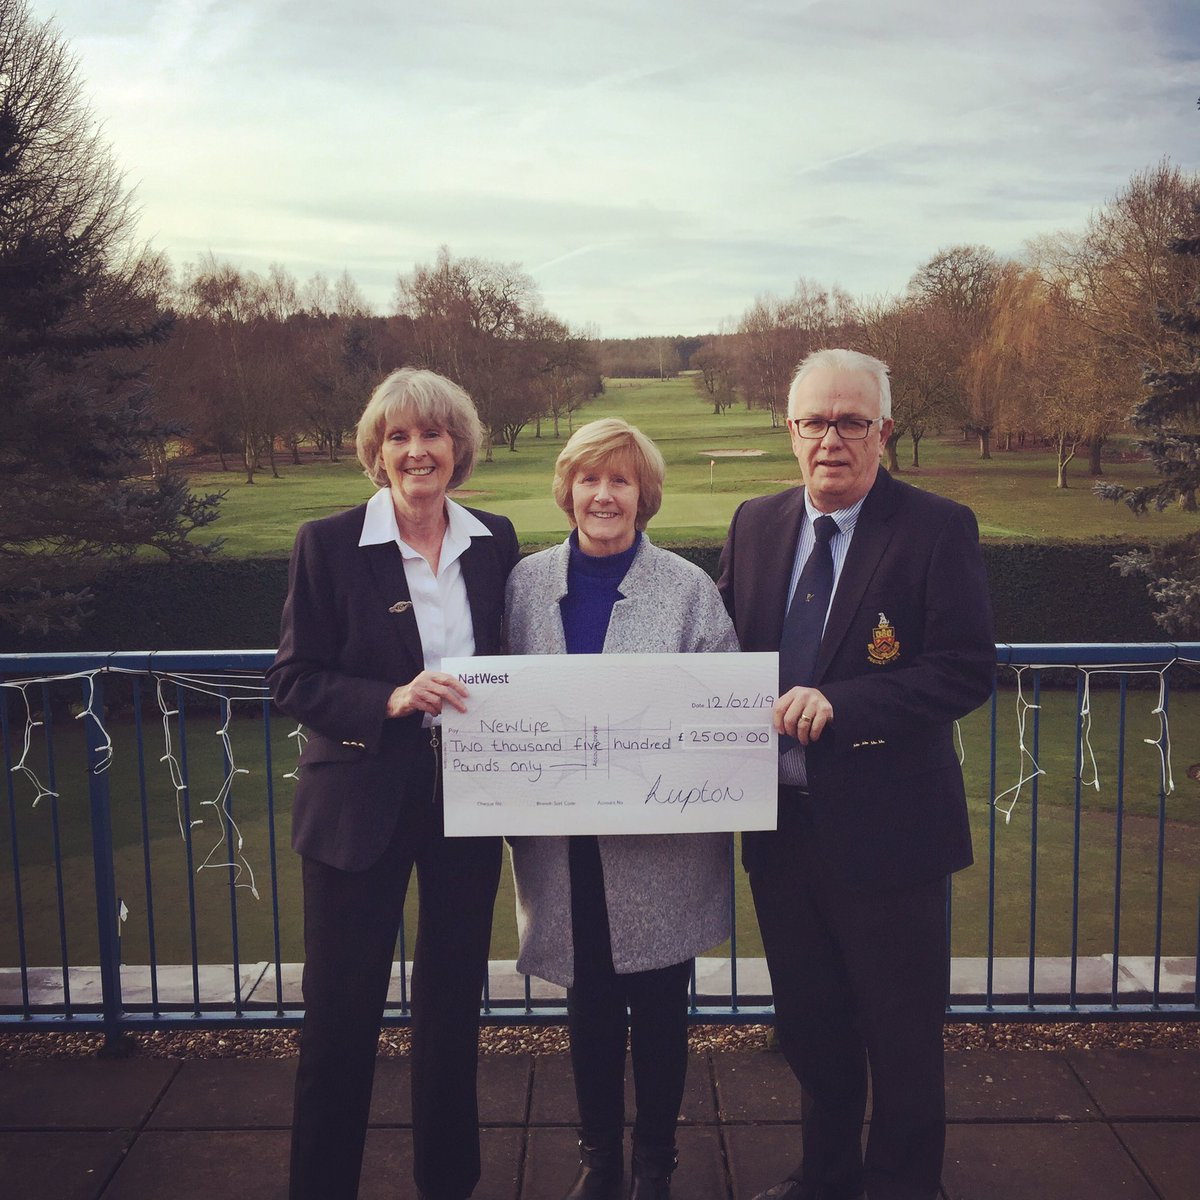 test Twitter Media - Mel Jones and Kate Robson (2018 Presidents) presenting a cheque to their chosen charity @Newlifecharity  Fantastic fundraising for a fantastic charity! Well done!  #charity #golfclub @MidlandsGolfer @EnglandGolf @staffsgolf @ThePGA @staffsgolfclubs @IPGCourseupdate https://t.co/aIohFdJRUv